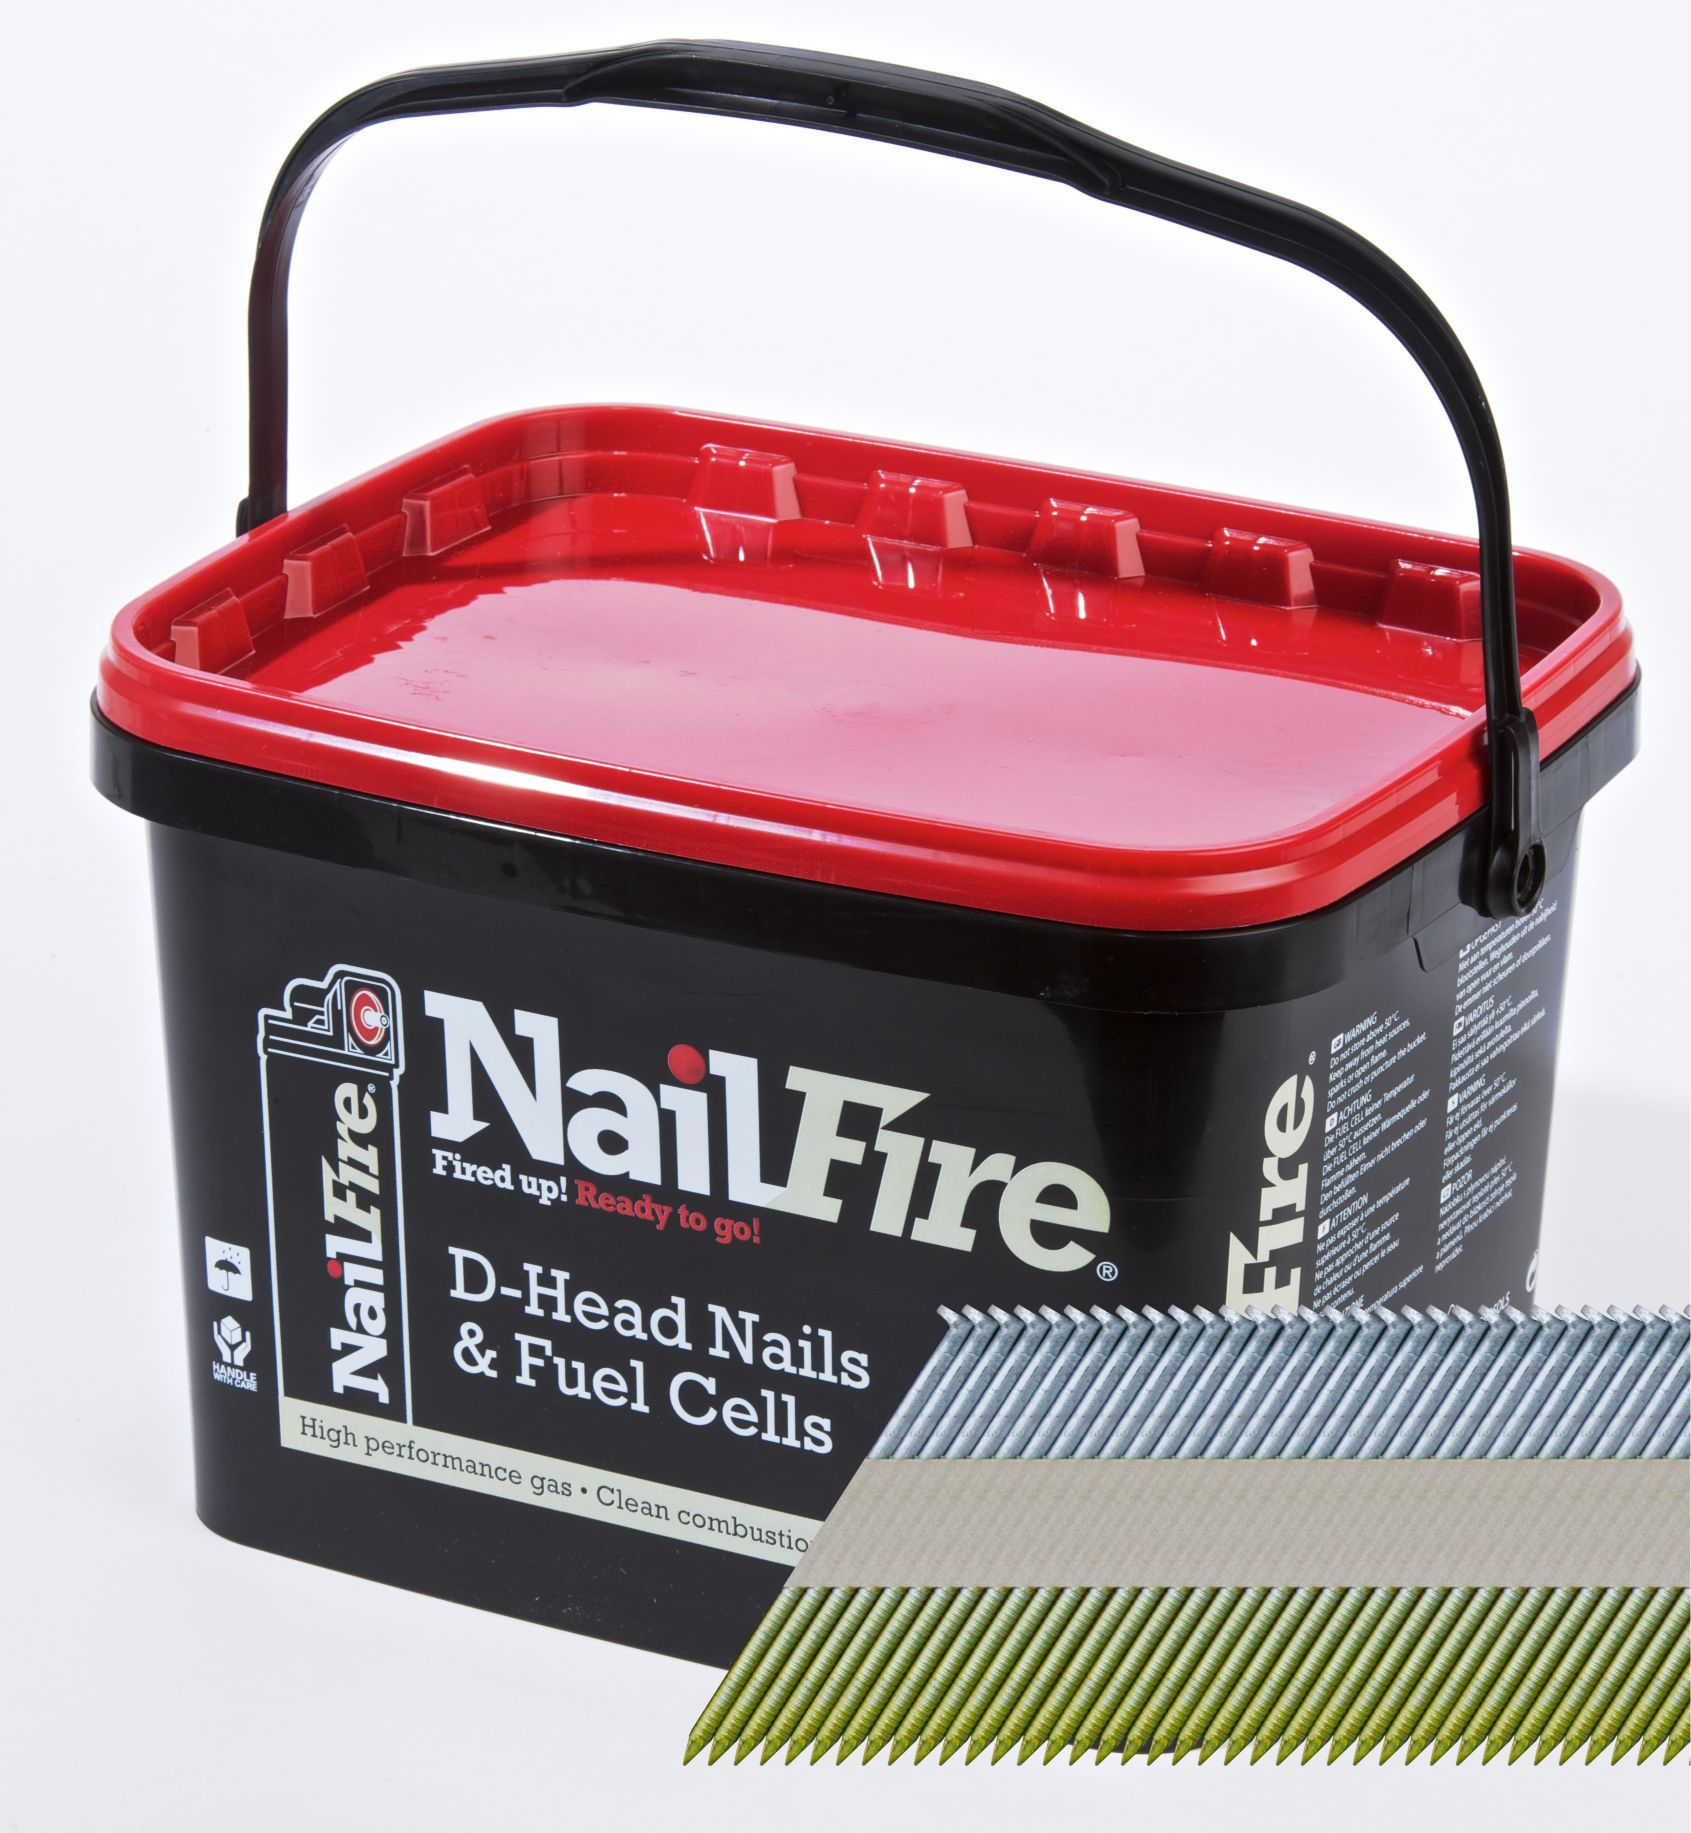 NAILFIRE 1ST FIX E-GALV RING NAIL & FUEL PACK 76MM (TUB OF 2000)